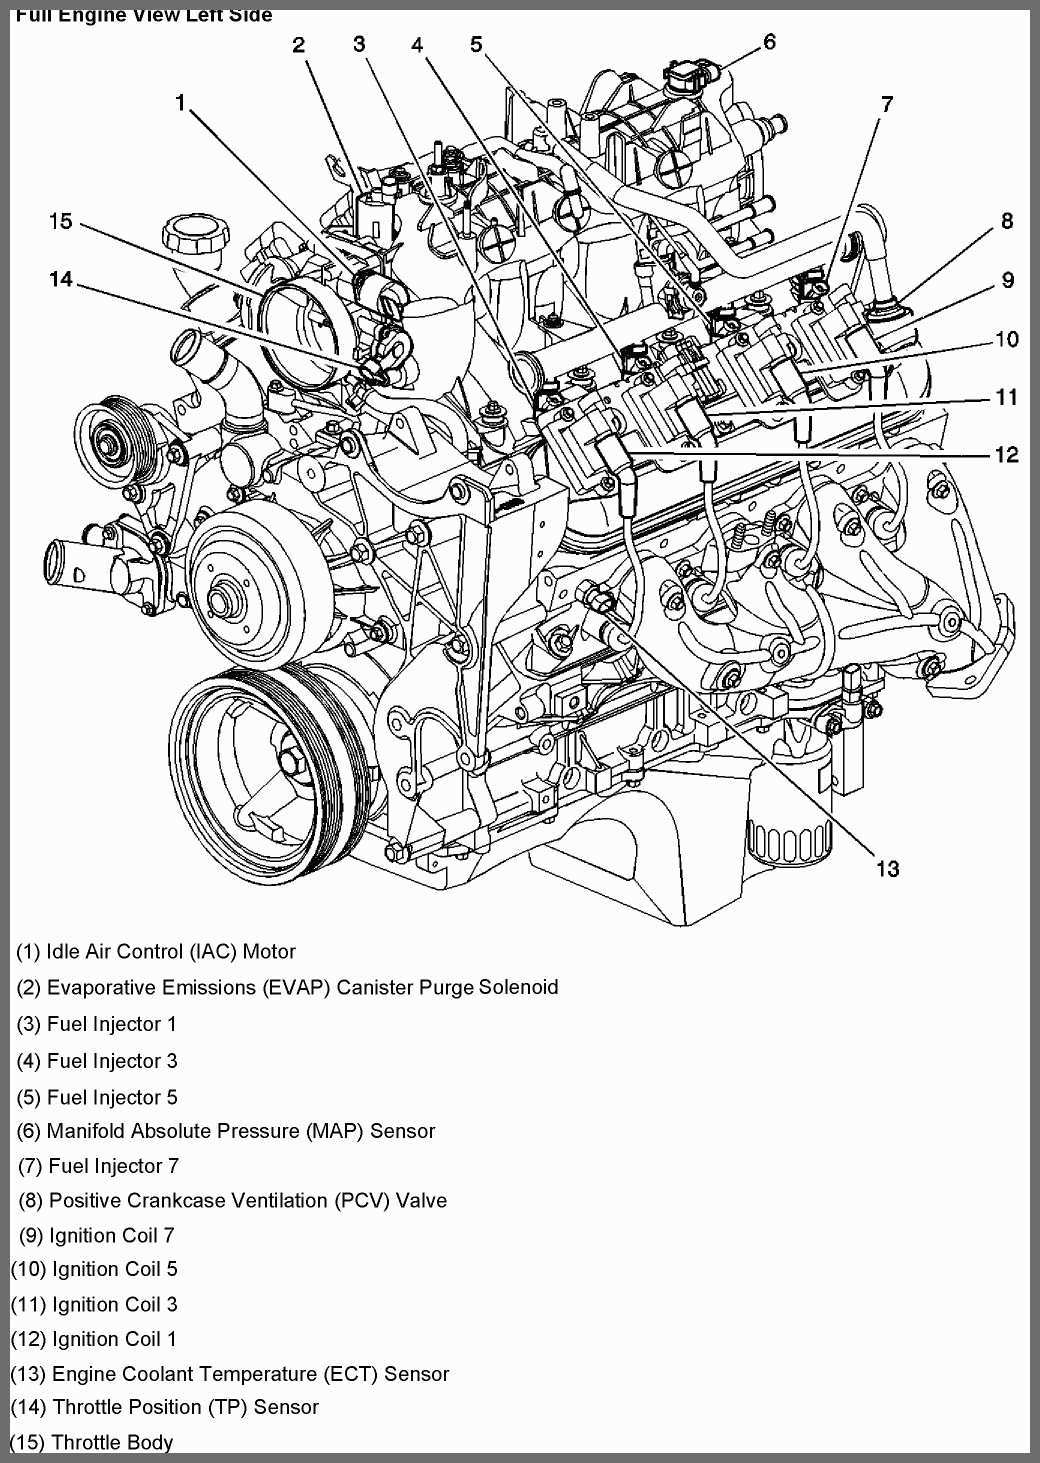 Chevy 350 Tbi Engine Diagram : chevy, engine, diagram, Chevy, Engine, Diagram, Wiring, Fame-freeze, Fame-freeze.faishoppingconsvitol.it